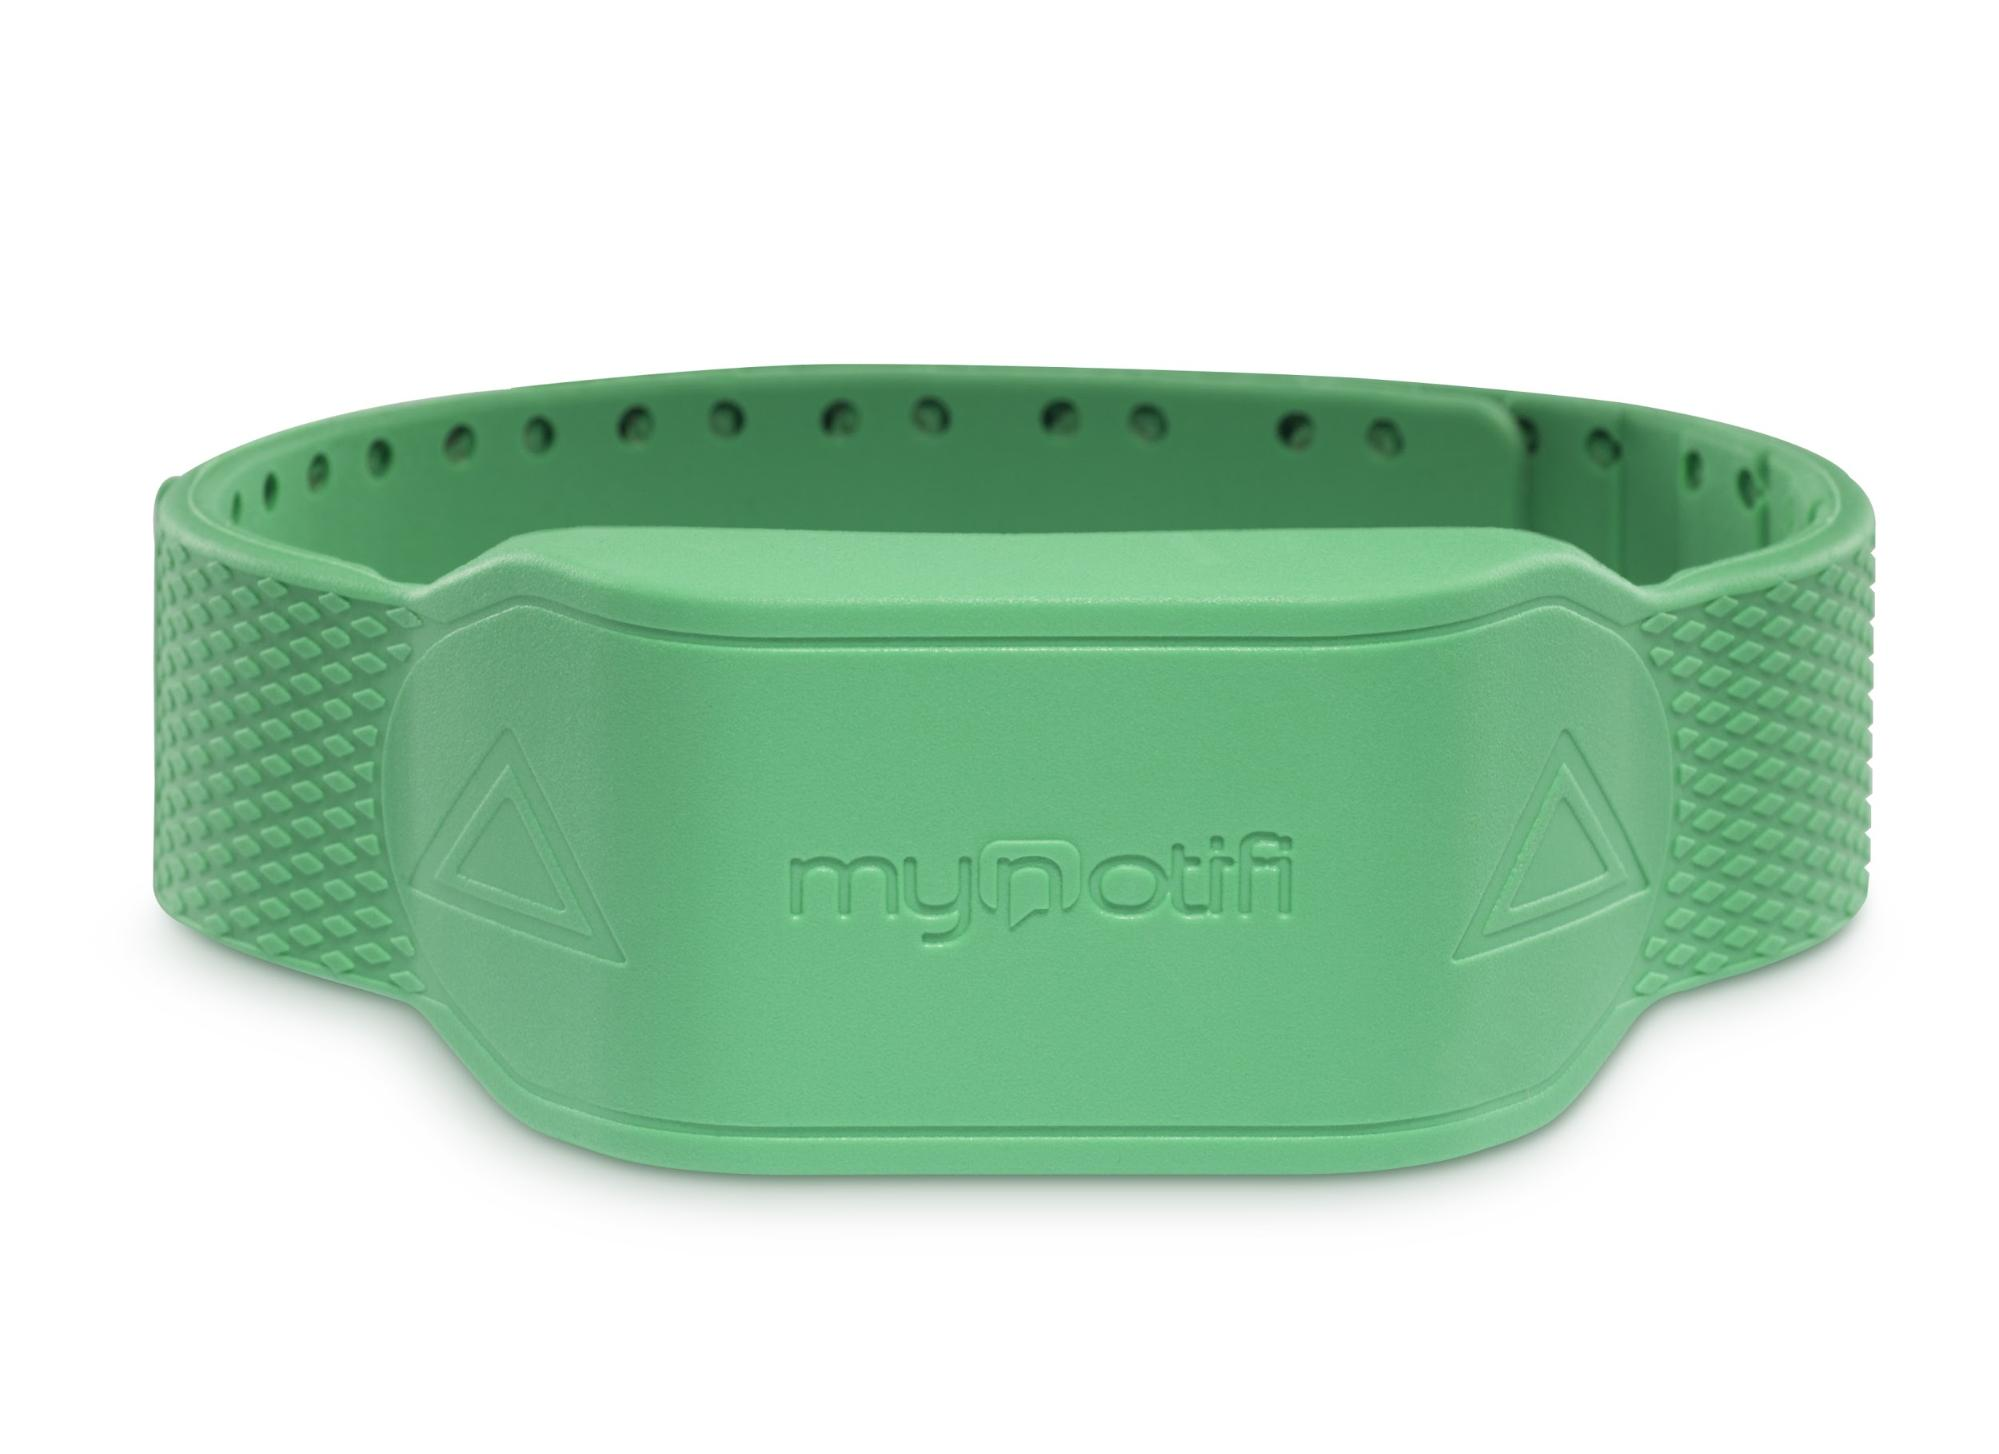 MyNotifi and NSCA work together to help seniors - MyNotifi wristband